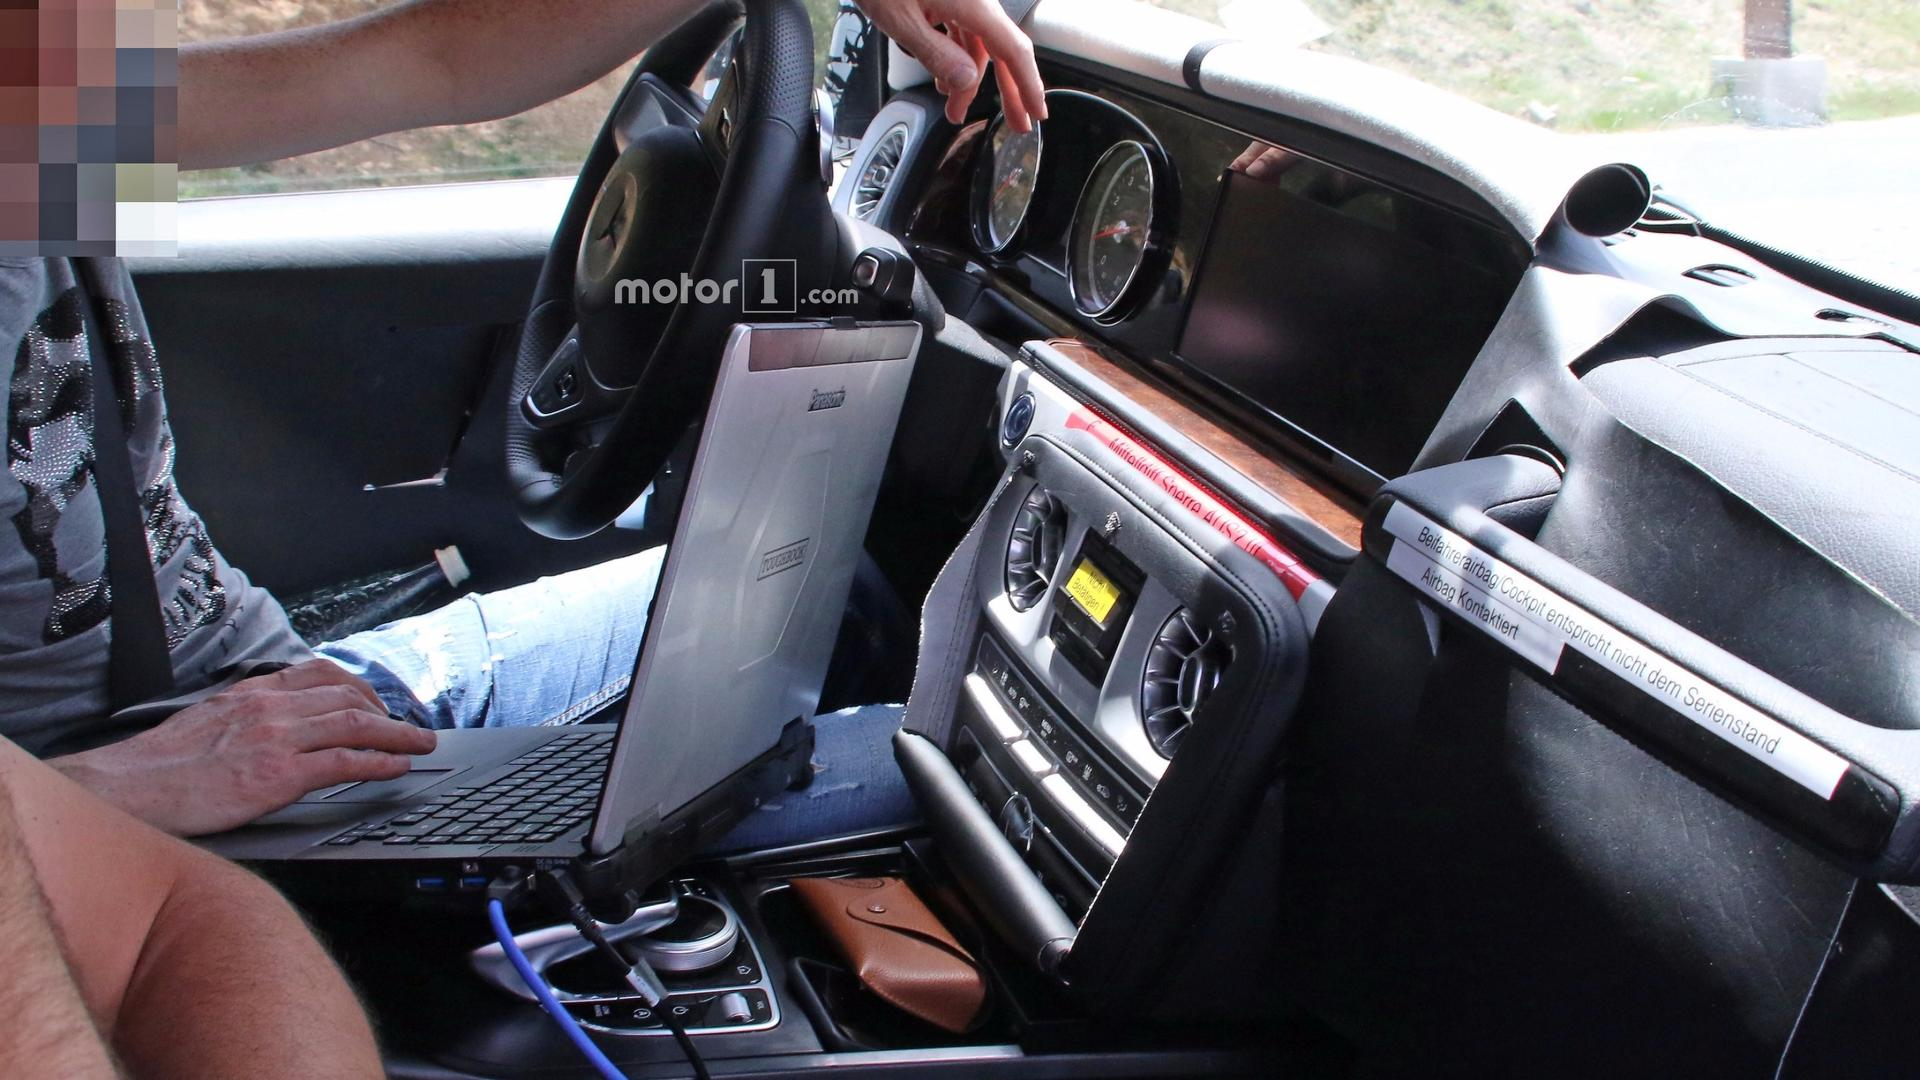 2019 Mercedes Amg G63 Caught Off Guard Showing Interior